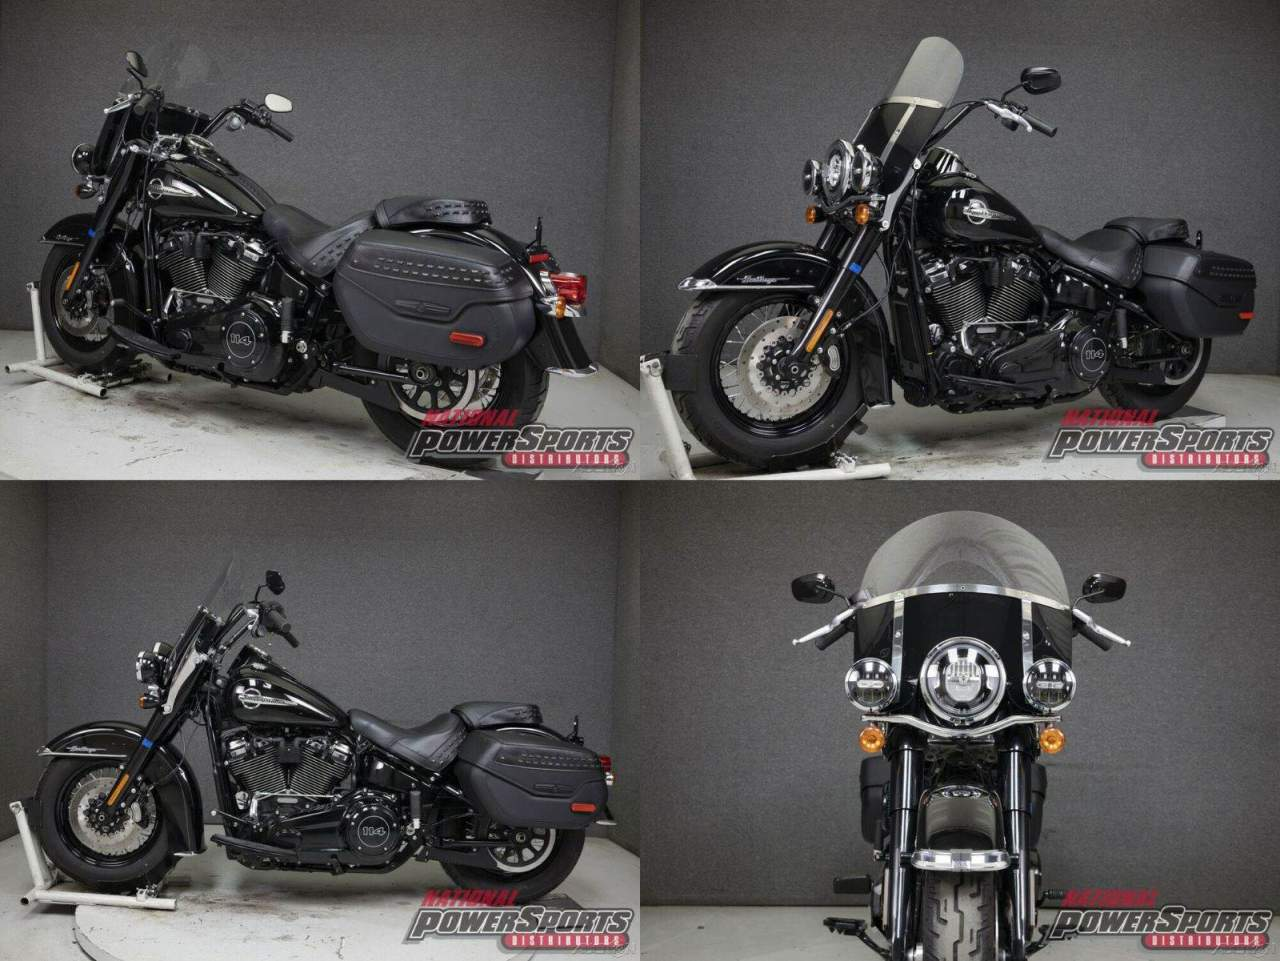 2018 Harley-Davidson Softail FLHCS HERITAGE CLASSIC WABS VIVID BLACK used for sale